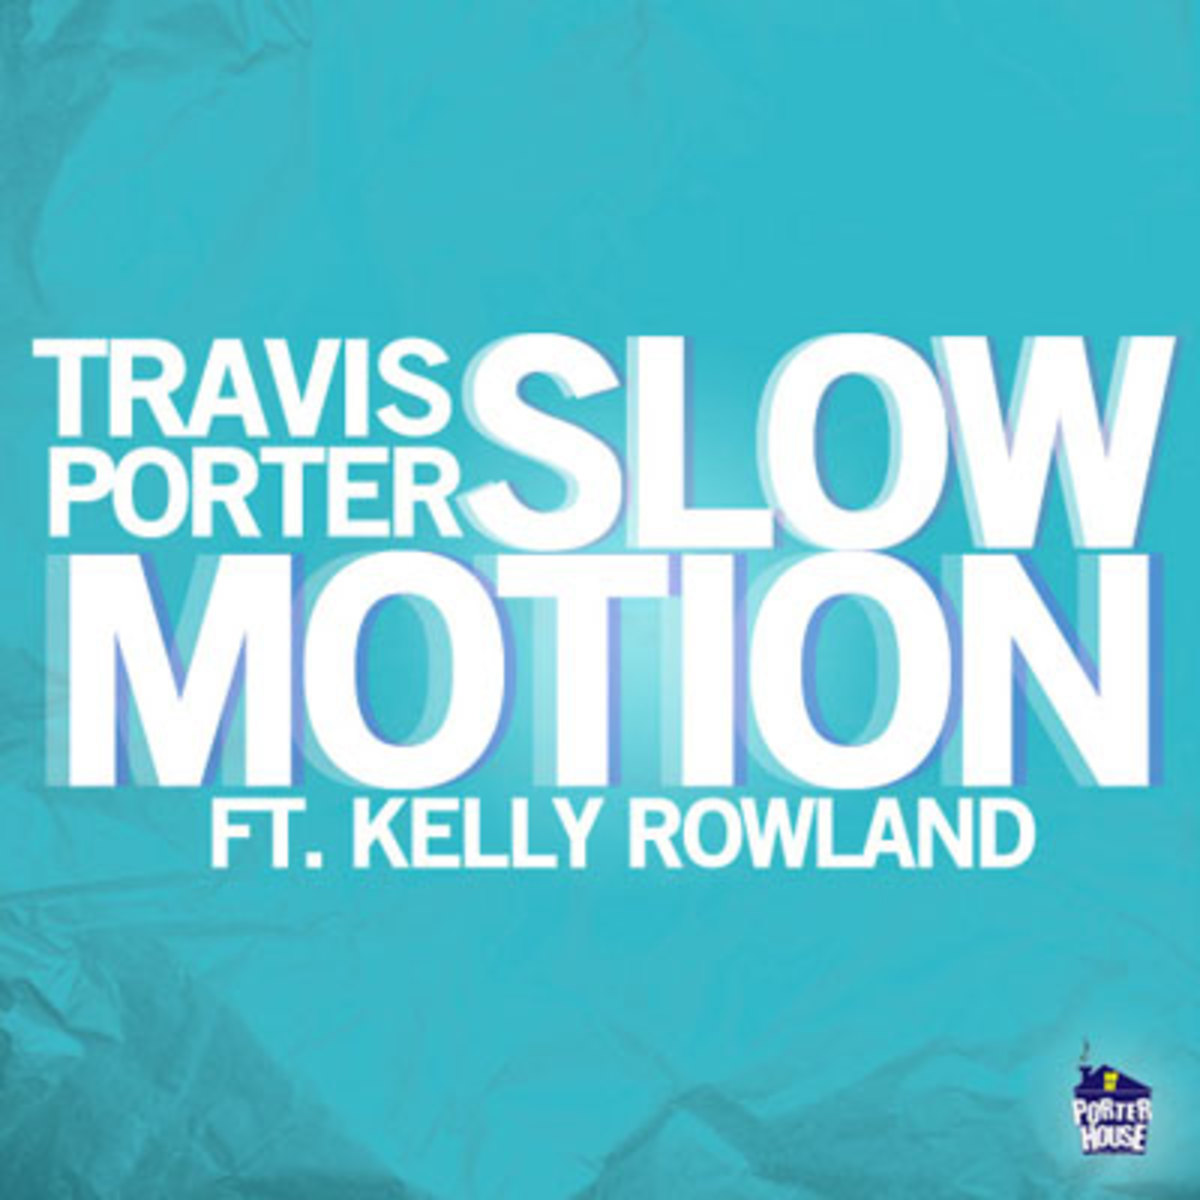 travisporter-slowmotion.jpg